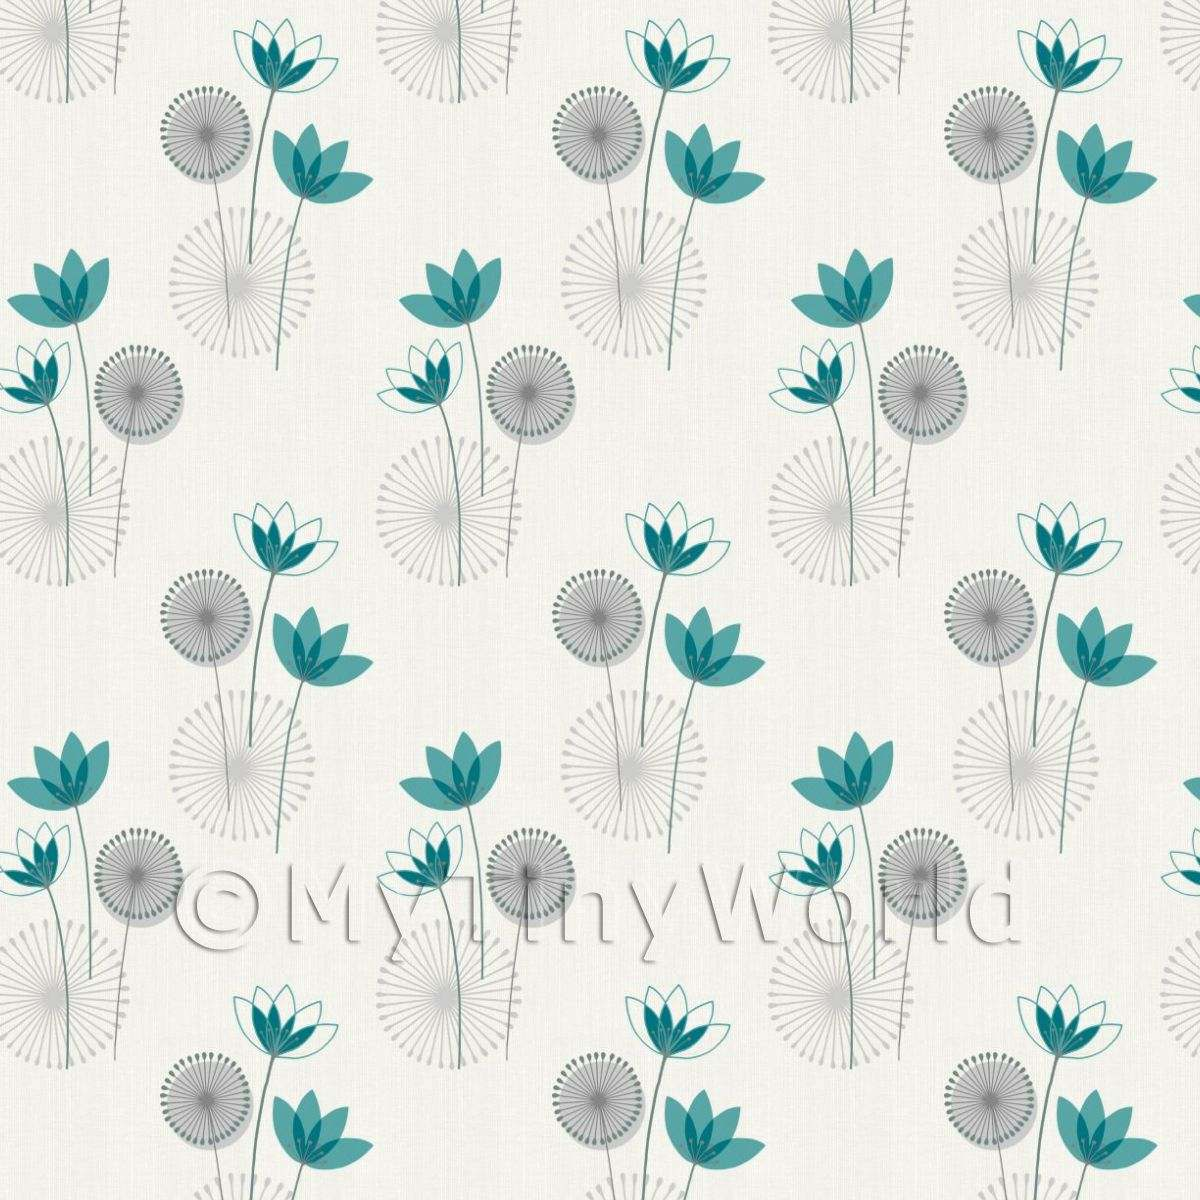 Dolls House Miniature Styalised Teal Flower Wallpaper